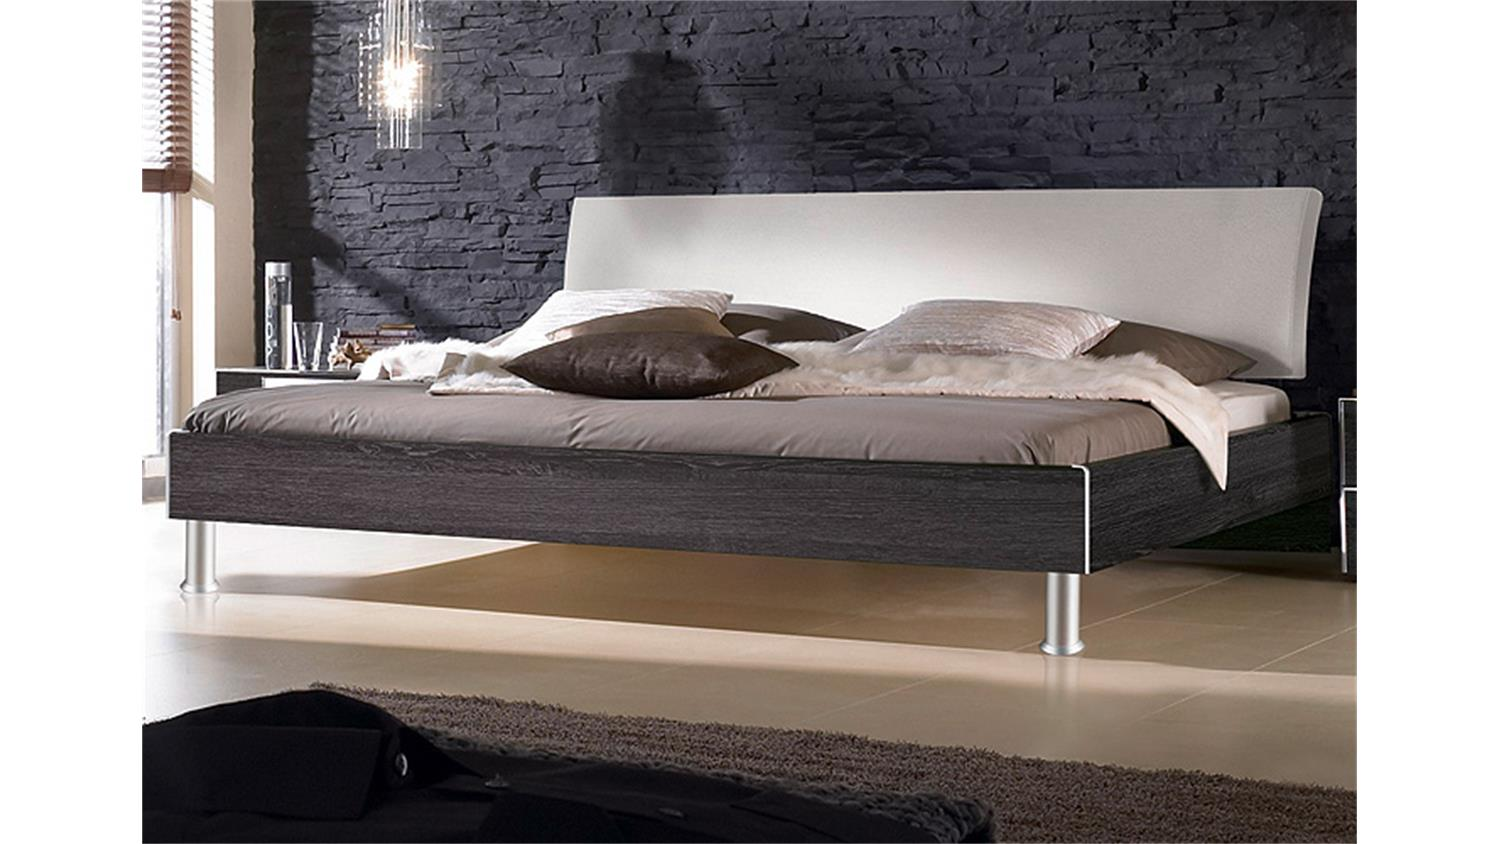 bett fargo von nolte mooreiche und kopfteil wei 200x200 cm. Black Bedroom Furniture Sets. Home Design Ideas